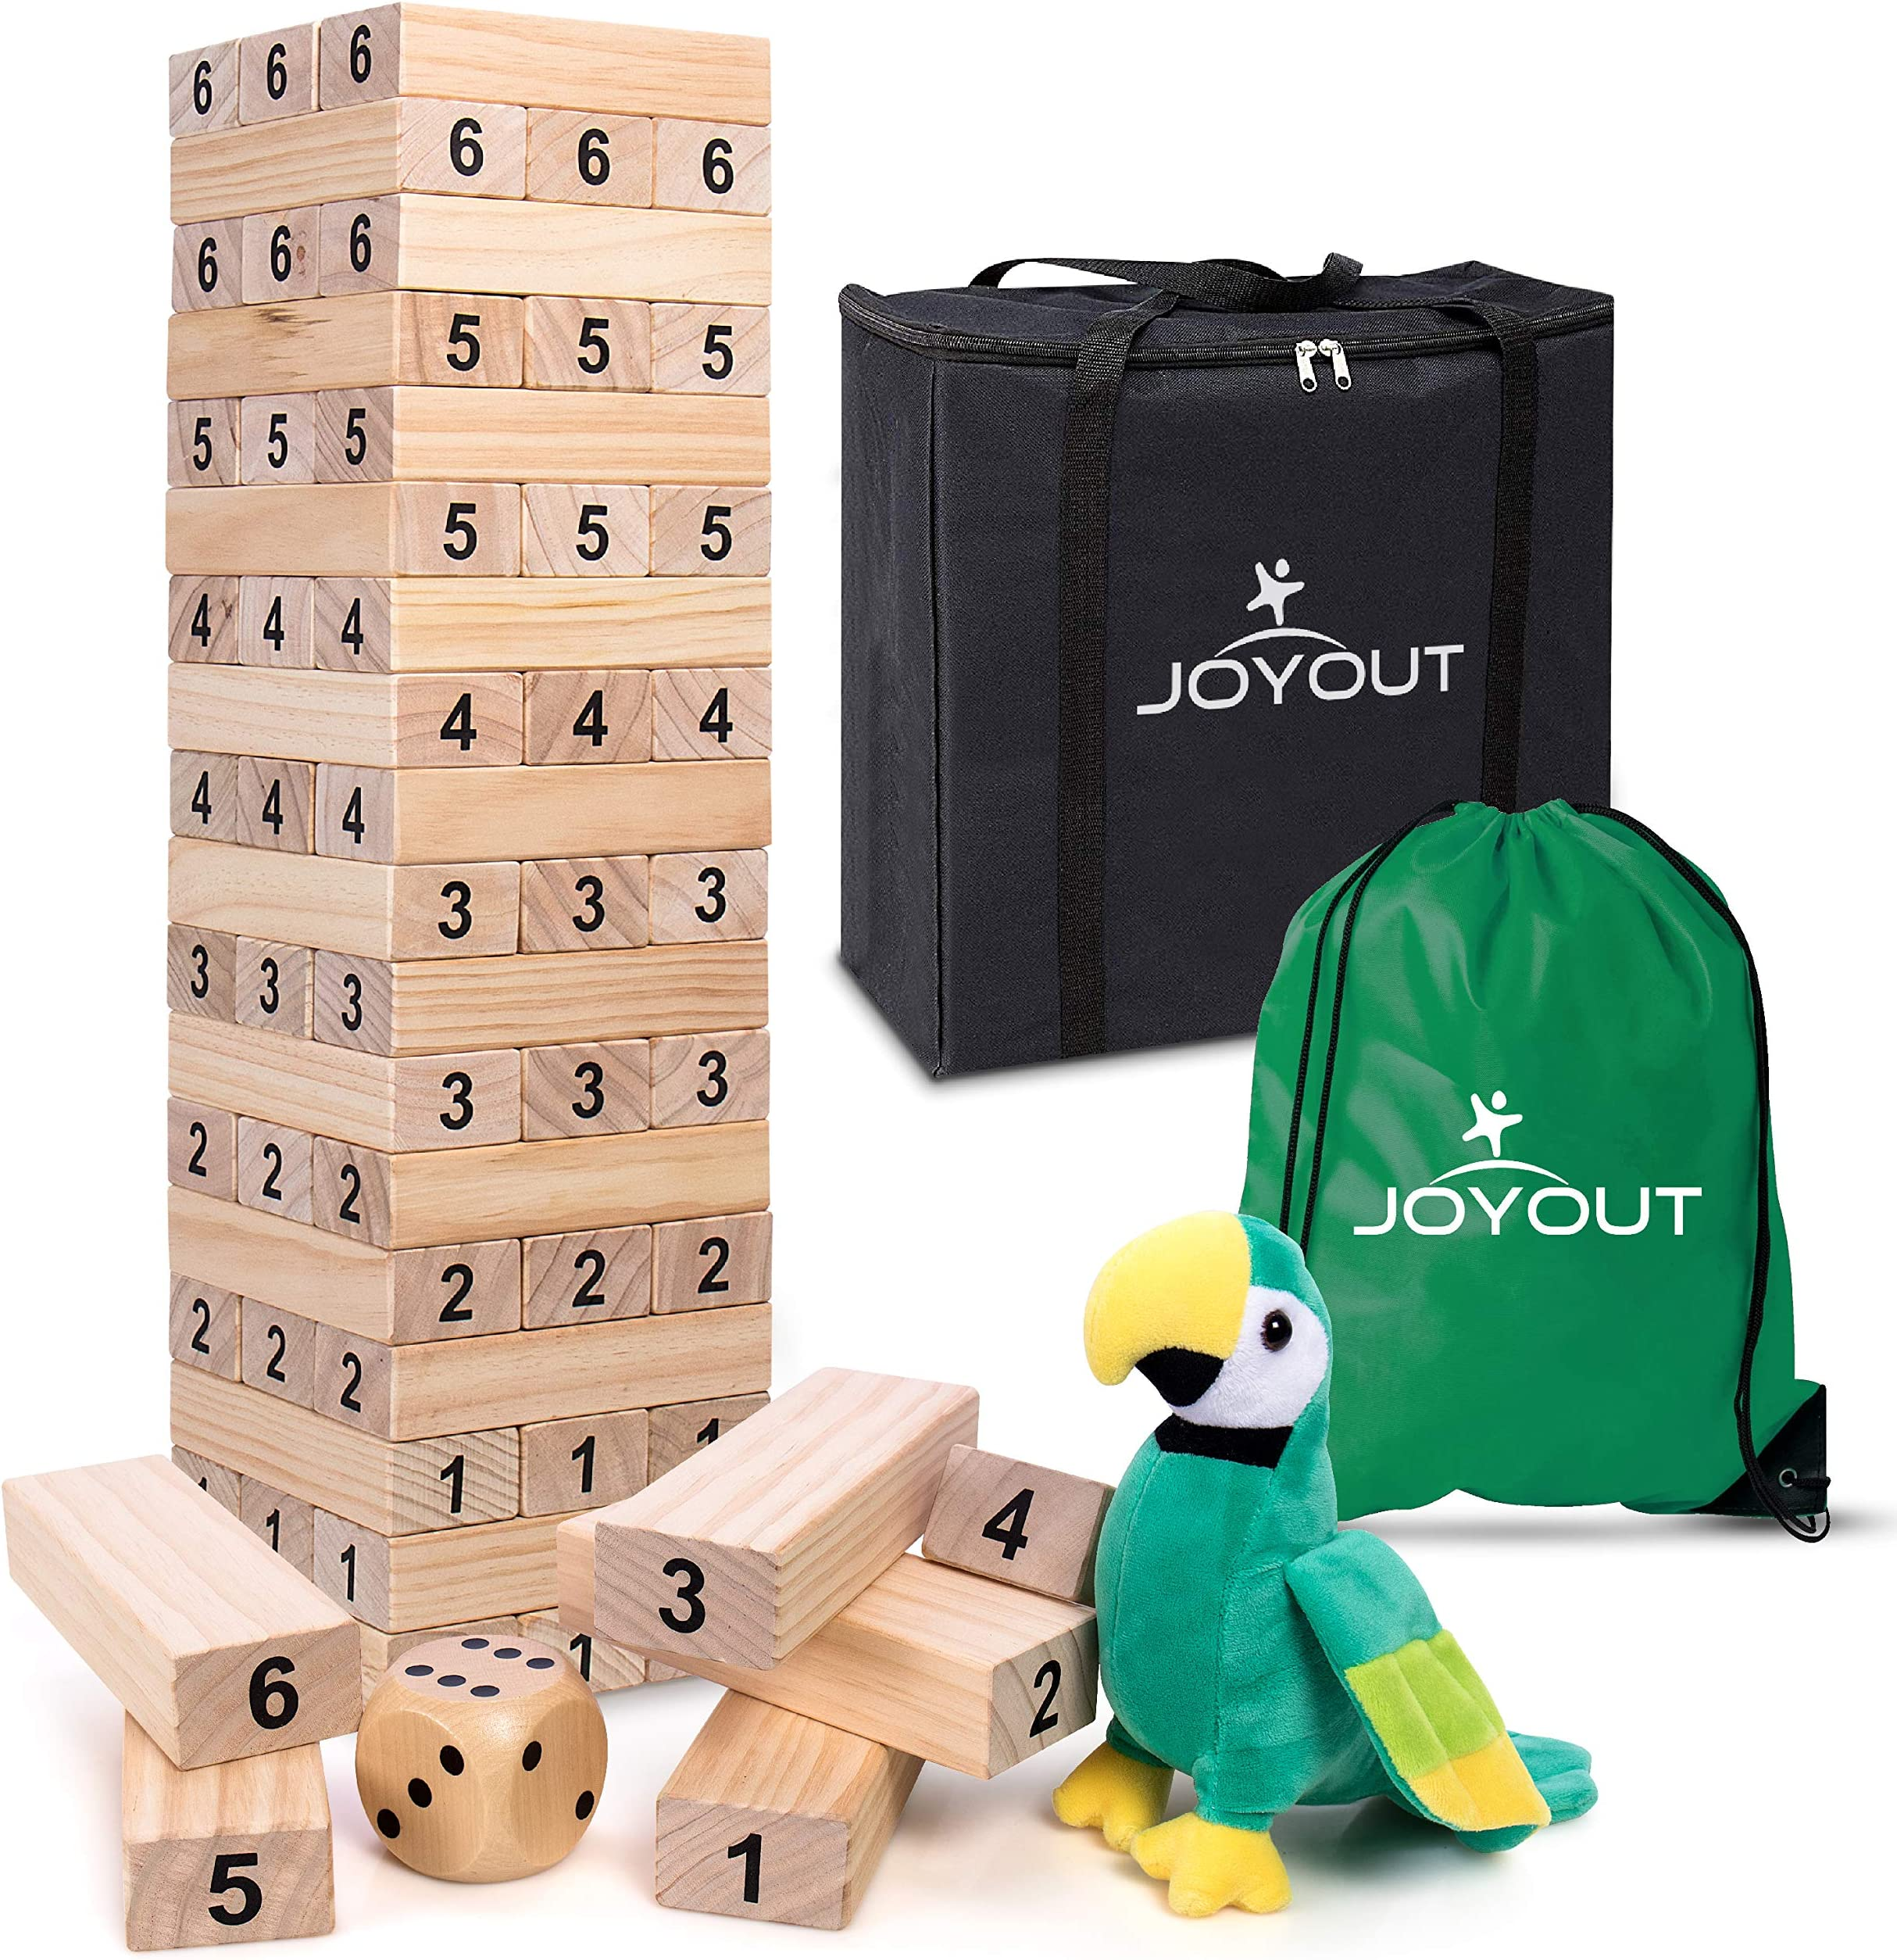 JOYOUT Giant Tumble Tower: Complete 54 Jumbo Stacking Wood Blocks Game Build 5 Feet Tall with Large Die, 2 Bags, Bird Toy, Indoor Outdoor Family Fun